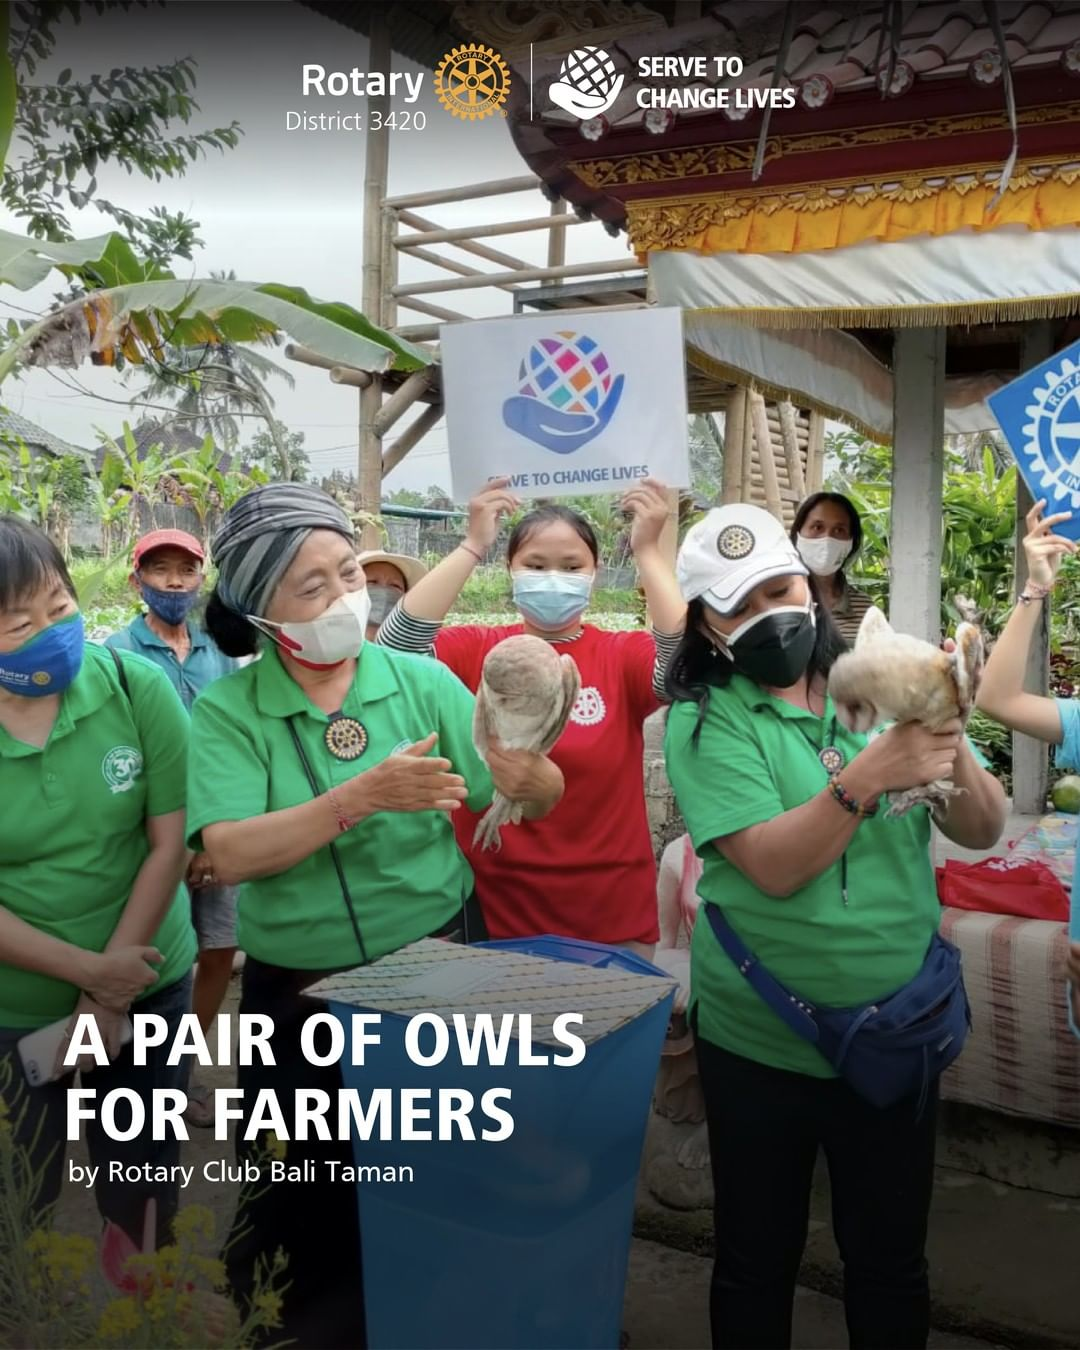 A Pair of Owls for Farmers